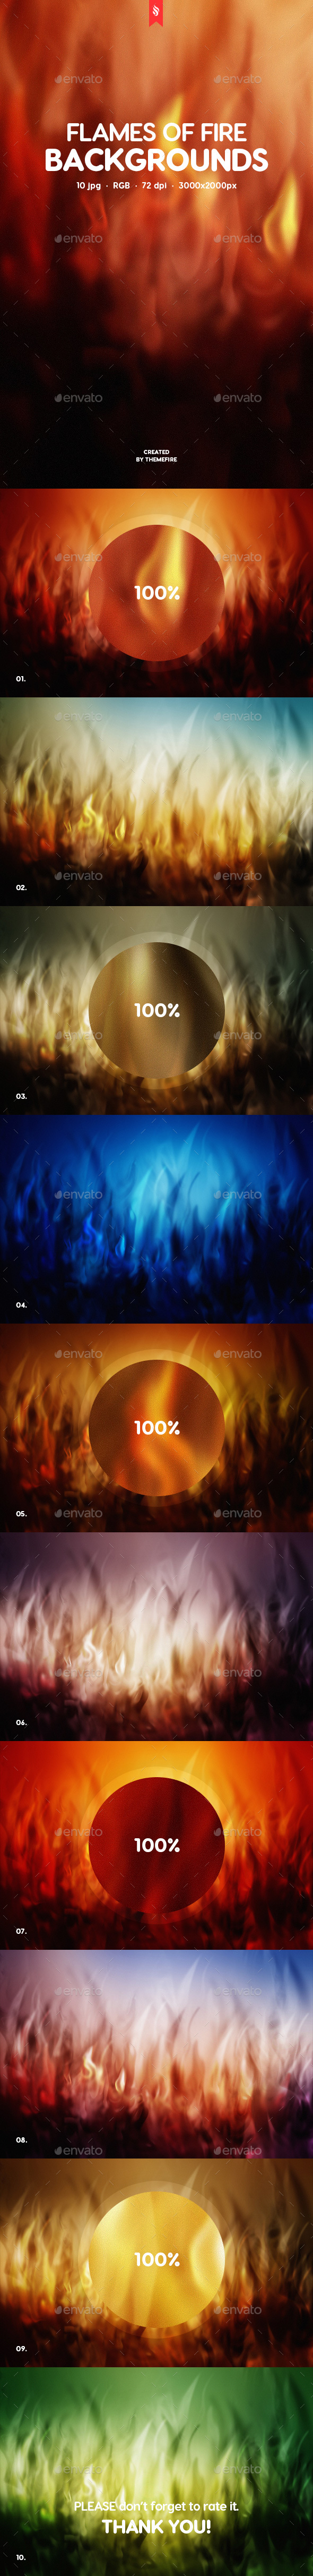 Flames of Fire Backgrounds - Backgrounds Graphics